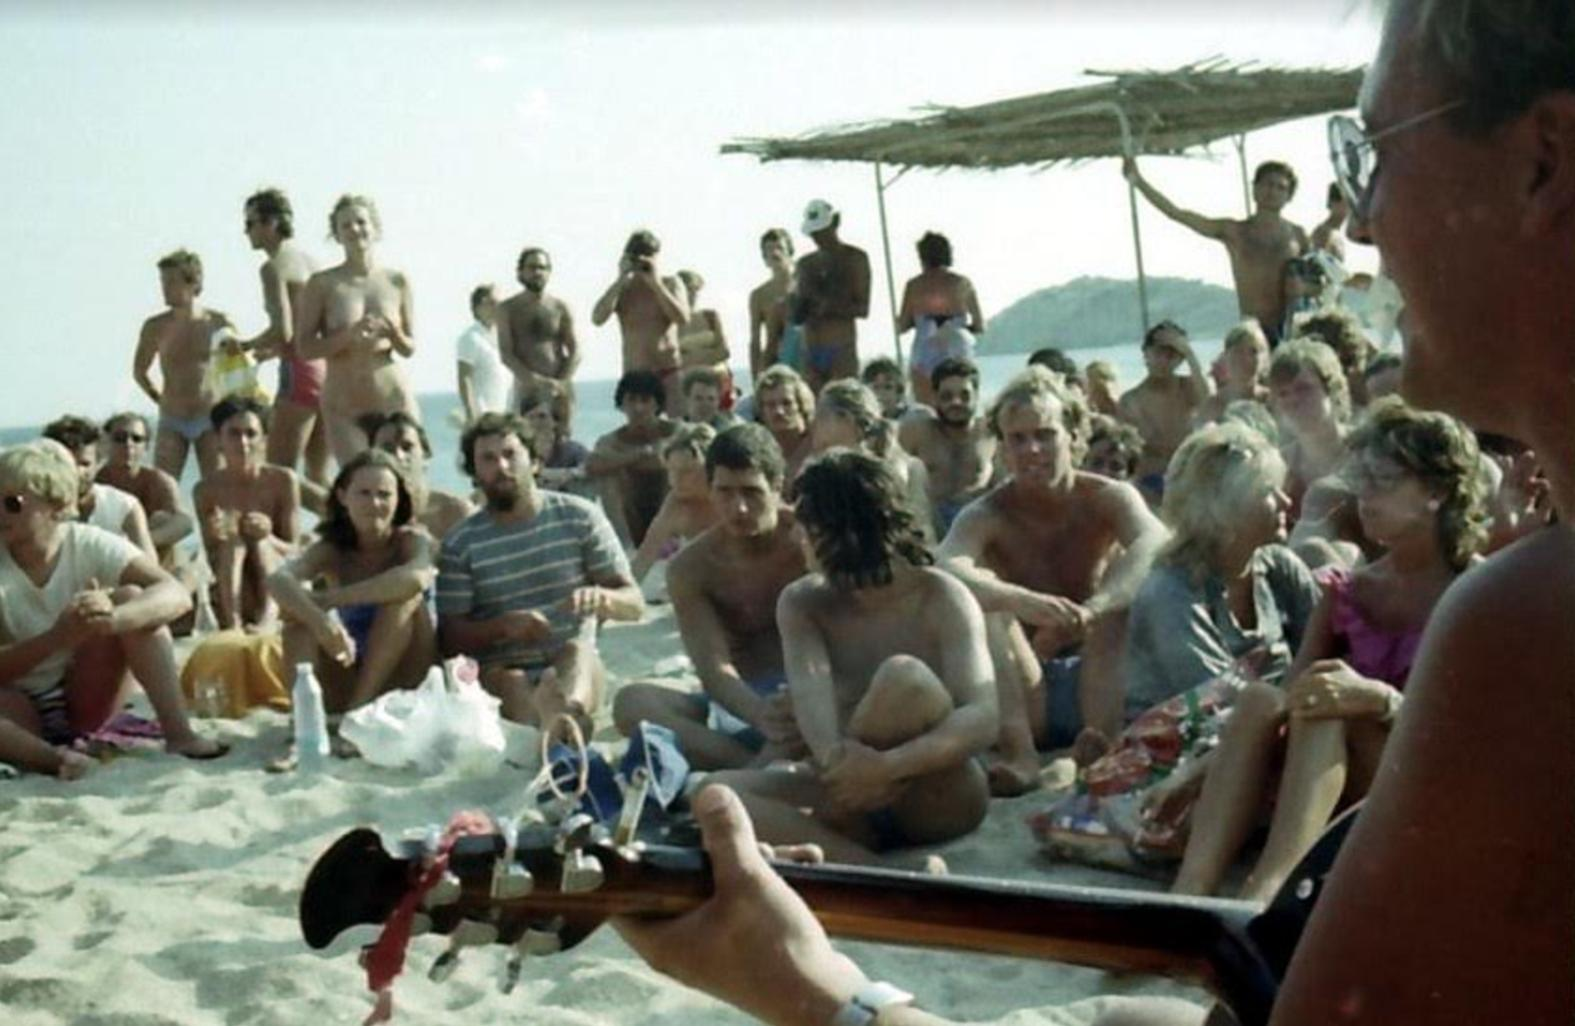 Beach sex nude on crowded